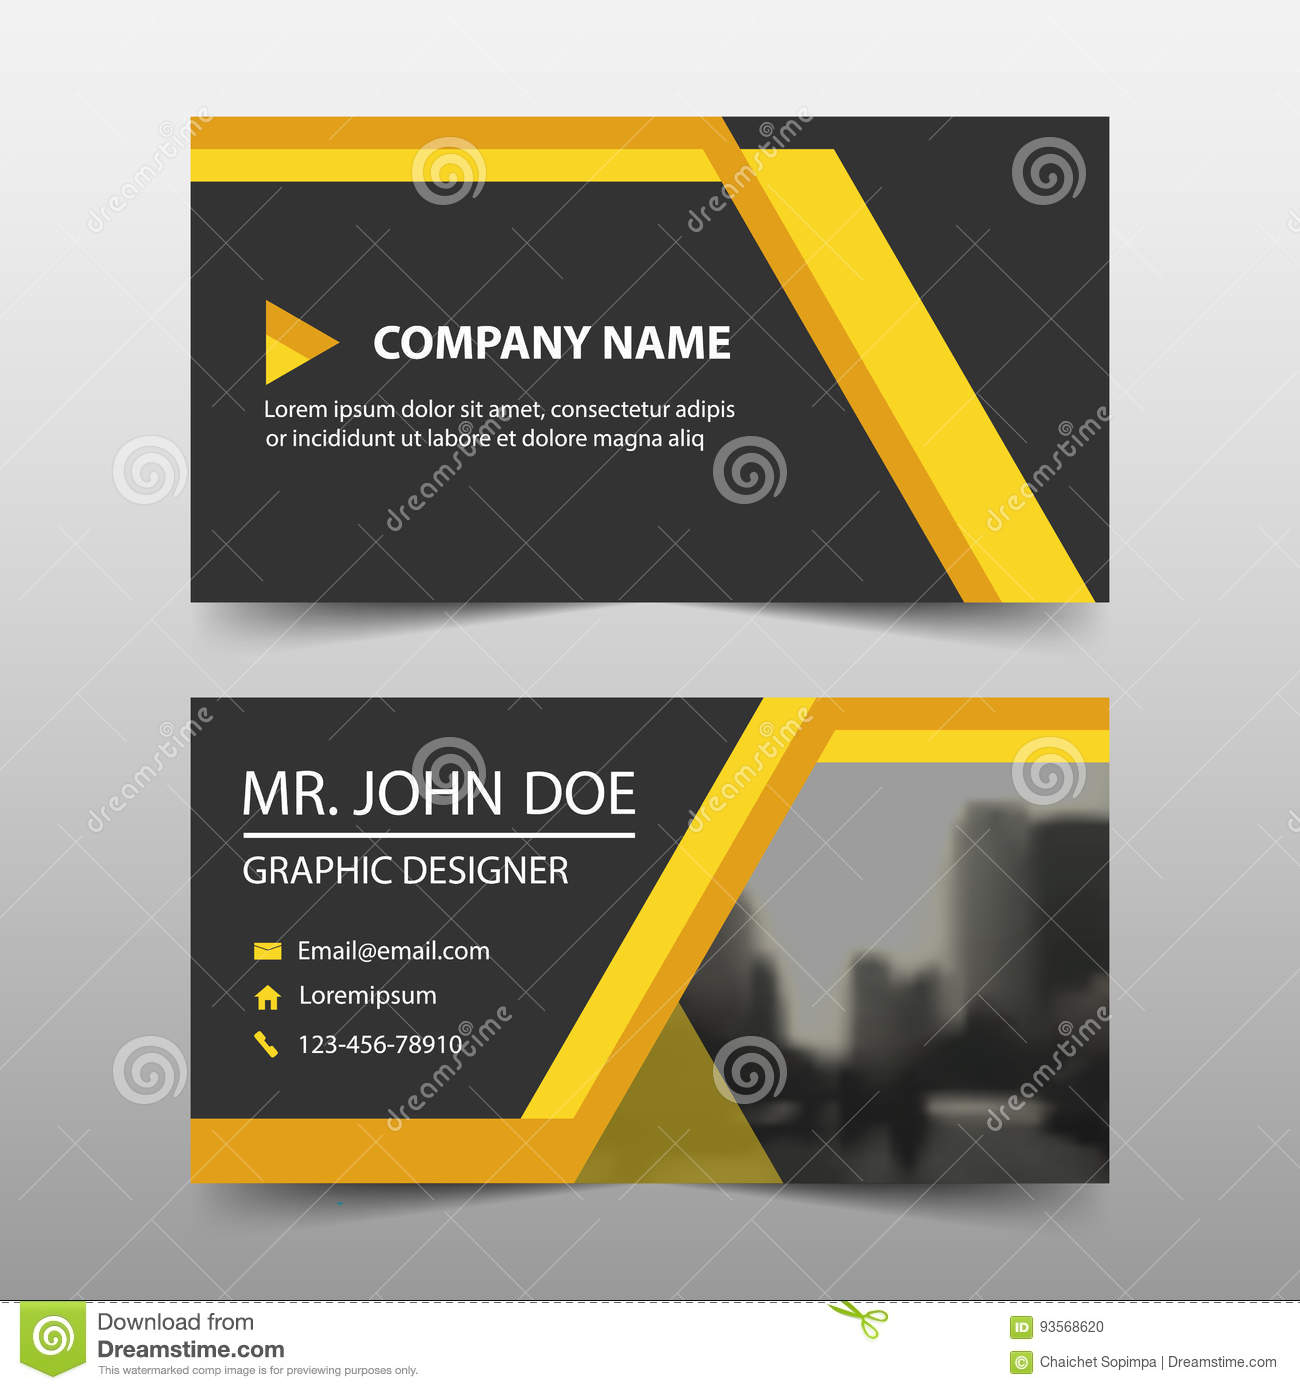 Watermarked business cards acurnamedia watermarked business cards reheart Choice Image